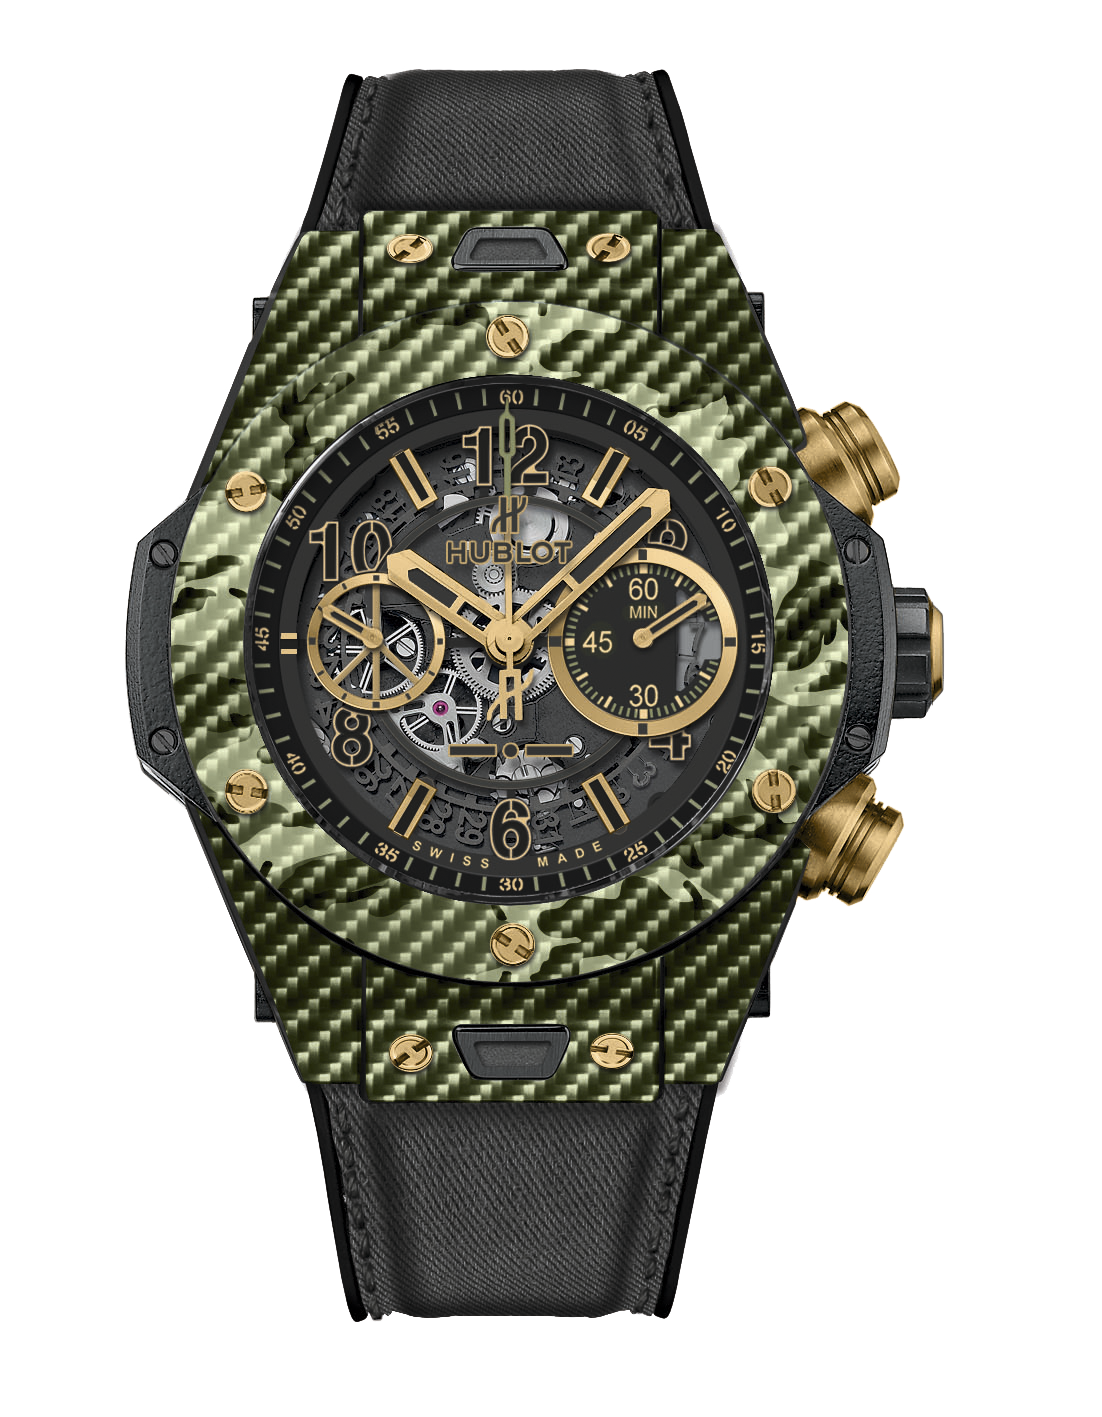 Hublot Big Bang Unico Italia Independent Green Camo Ref 411.YG.1198.NR.ITI16